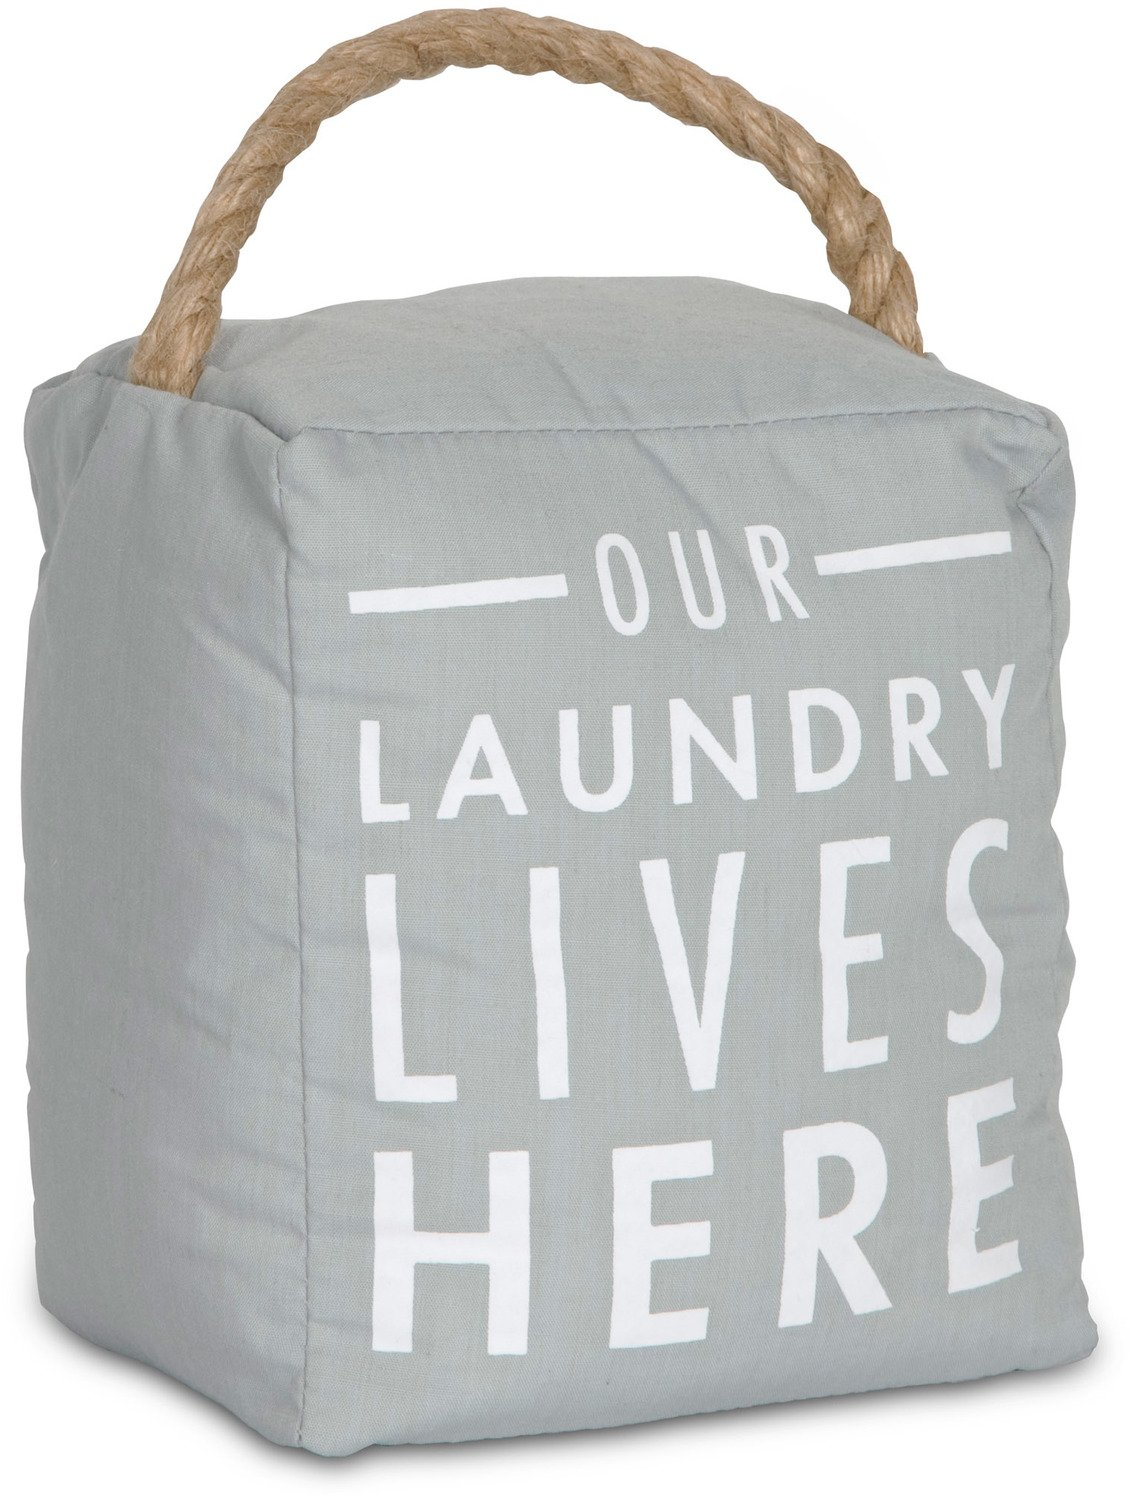 Pavilion Gift Company 72193 Our Laundry Lives Here Door Stopper, 5 x 6''